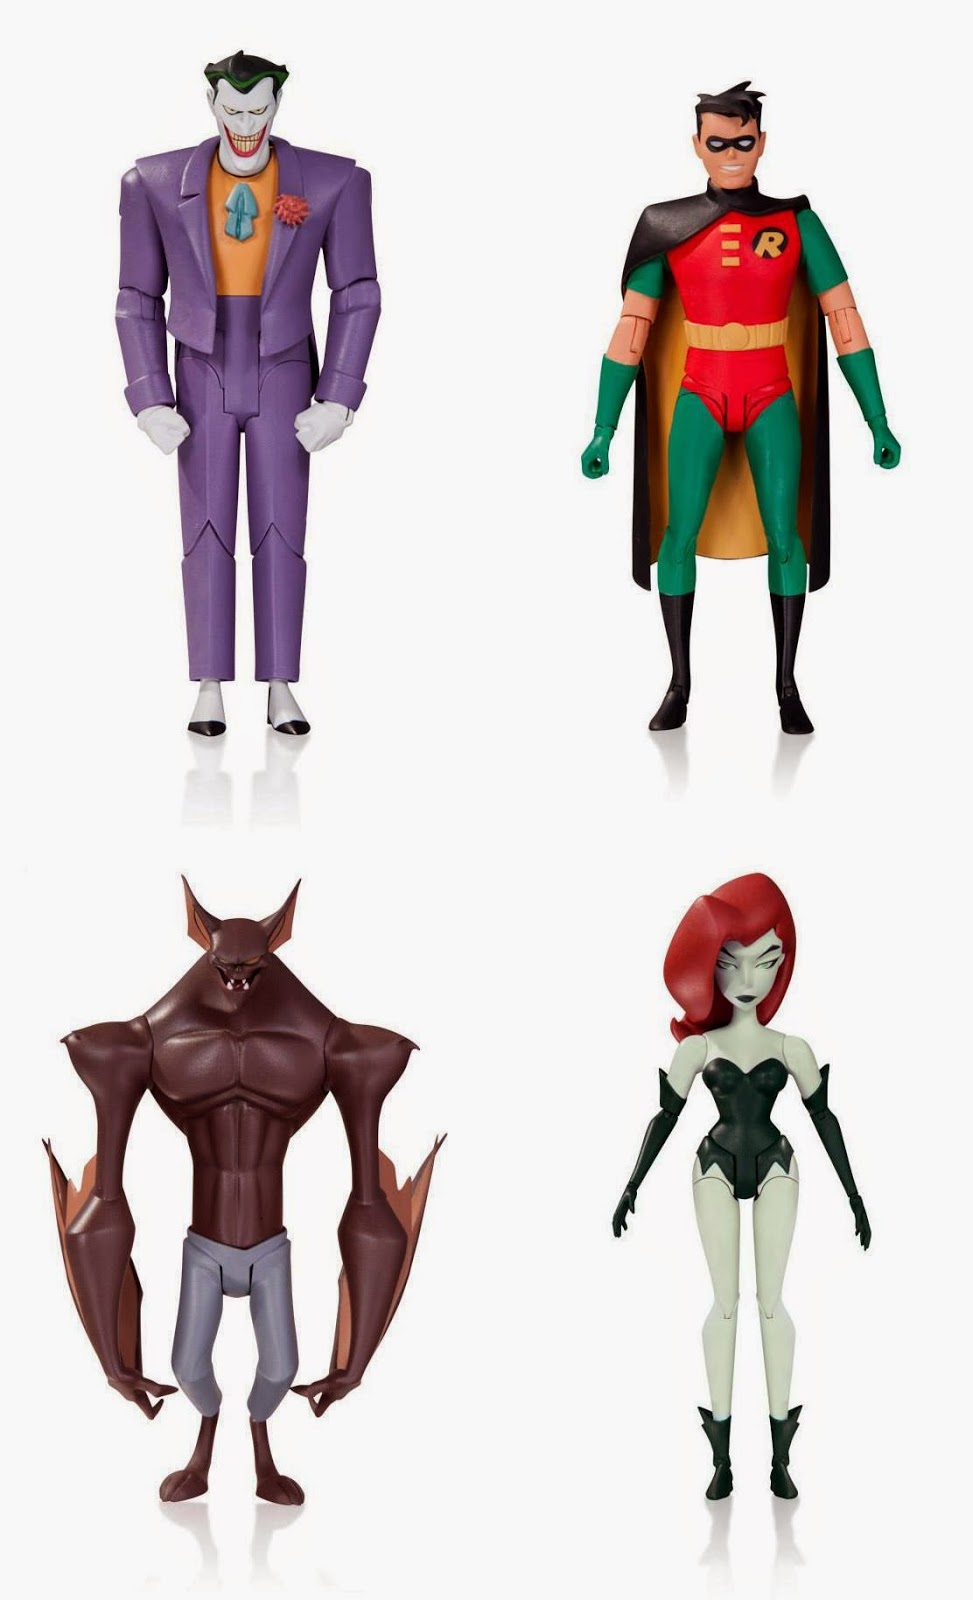 "Batman The Animated Series Wave 2 6"" Action Figure by DC Collectibles - The Joker, Robin, Man-Bat & Poison Ivy"